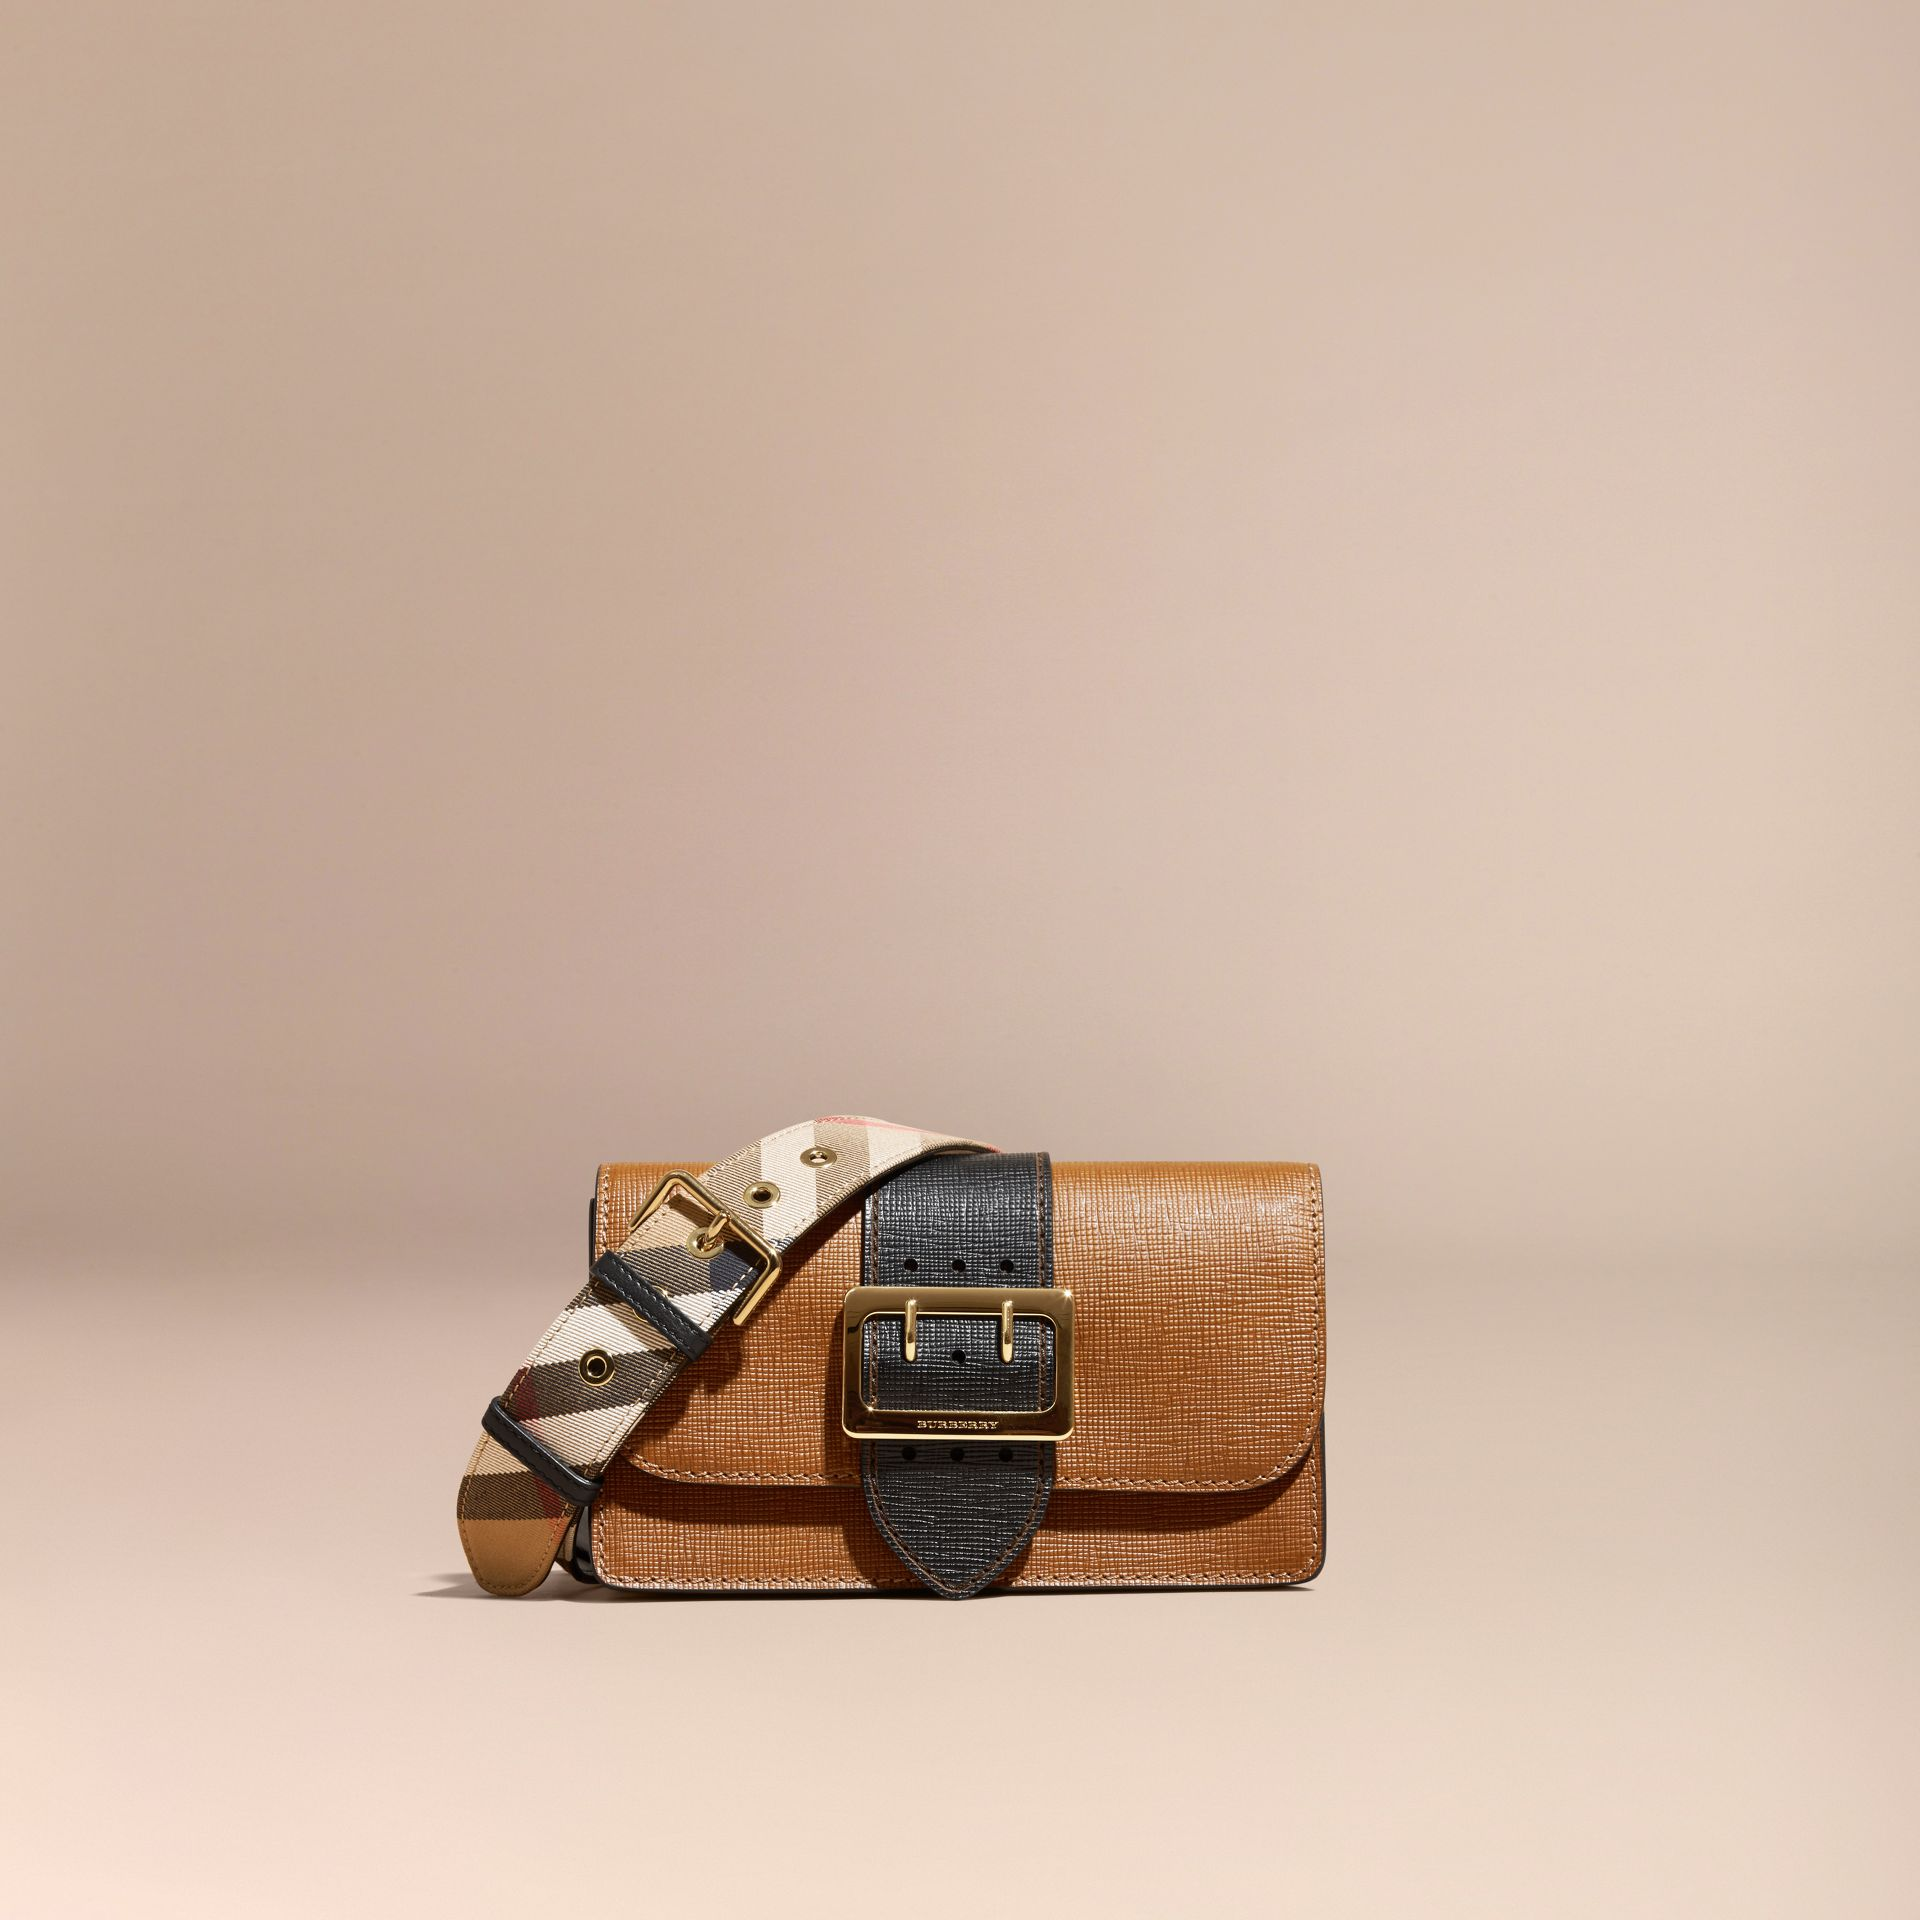 Tan/black The Medium Buckle Bag in Textured Leather Tan/black - gallery image 8